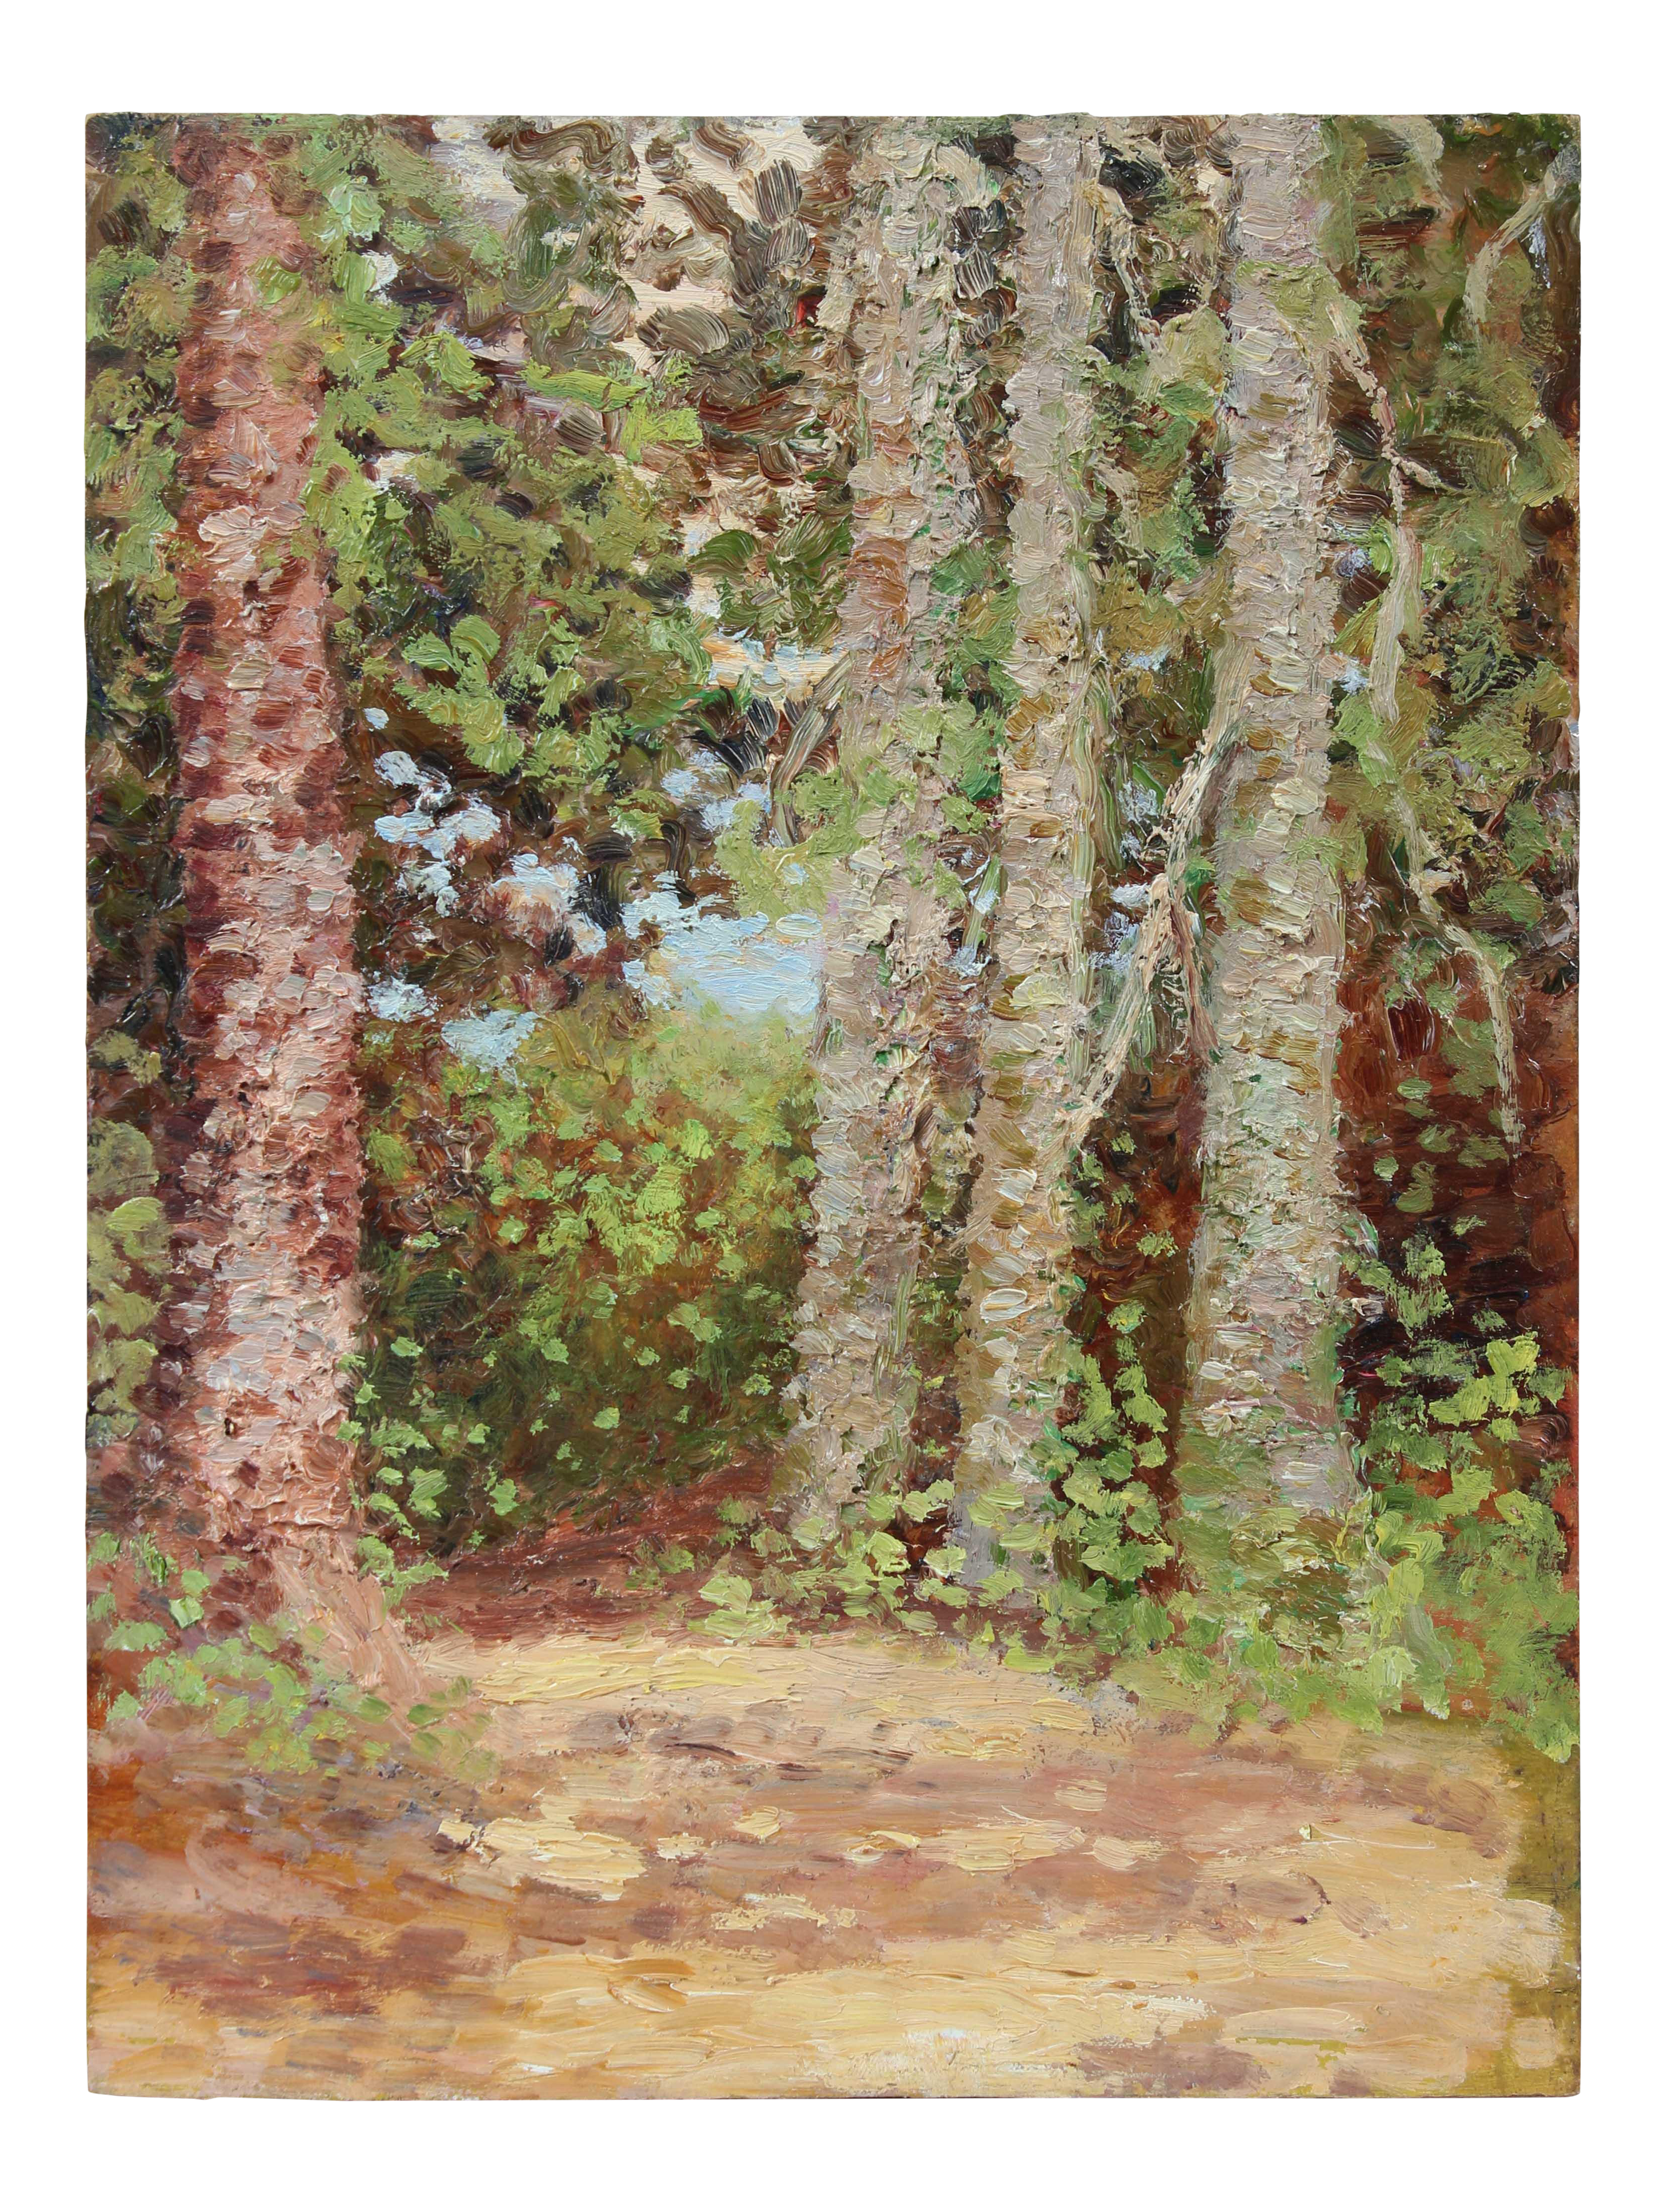 Impressionistic drawing landscape american. Excellent impressionist trees in